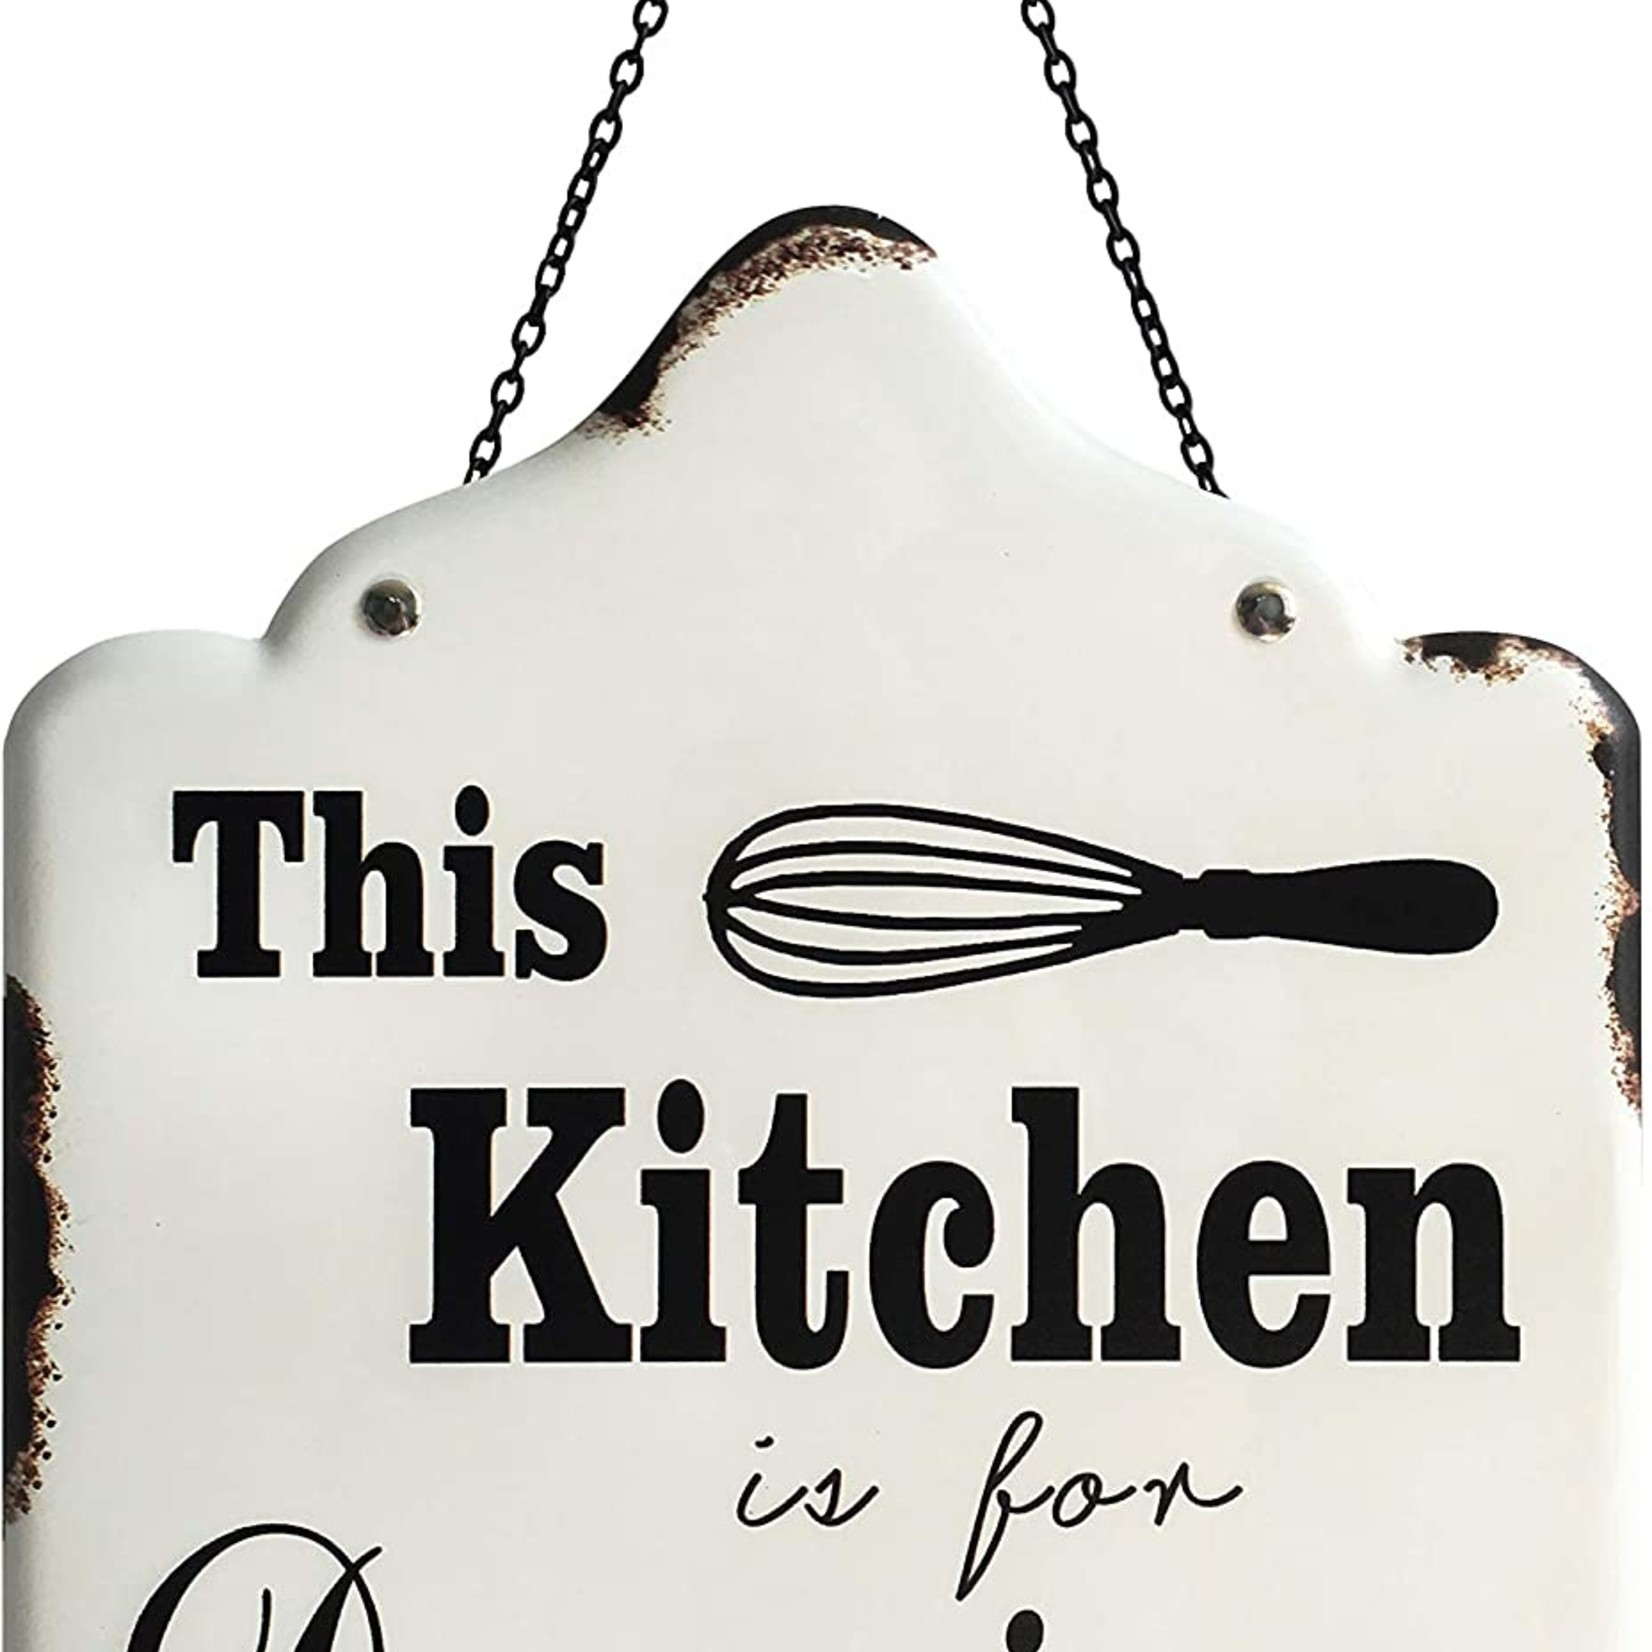 10x12 inch Rustic Farmhouse Enamel Metal Wall Hanging Art Decor Prints - The Kitchen is for Dancing